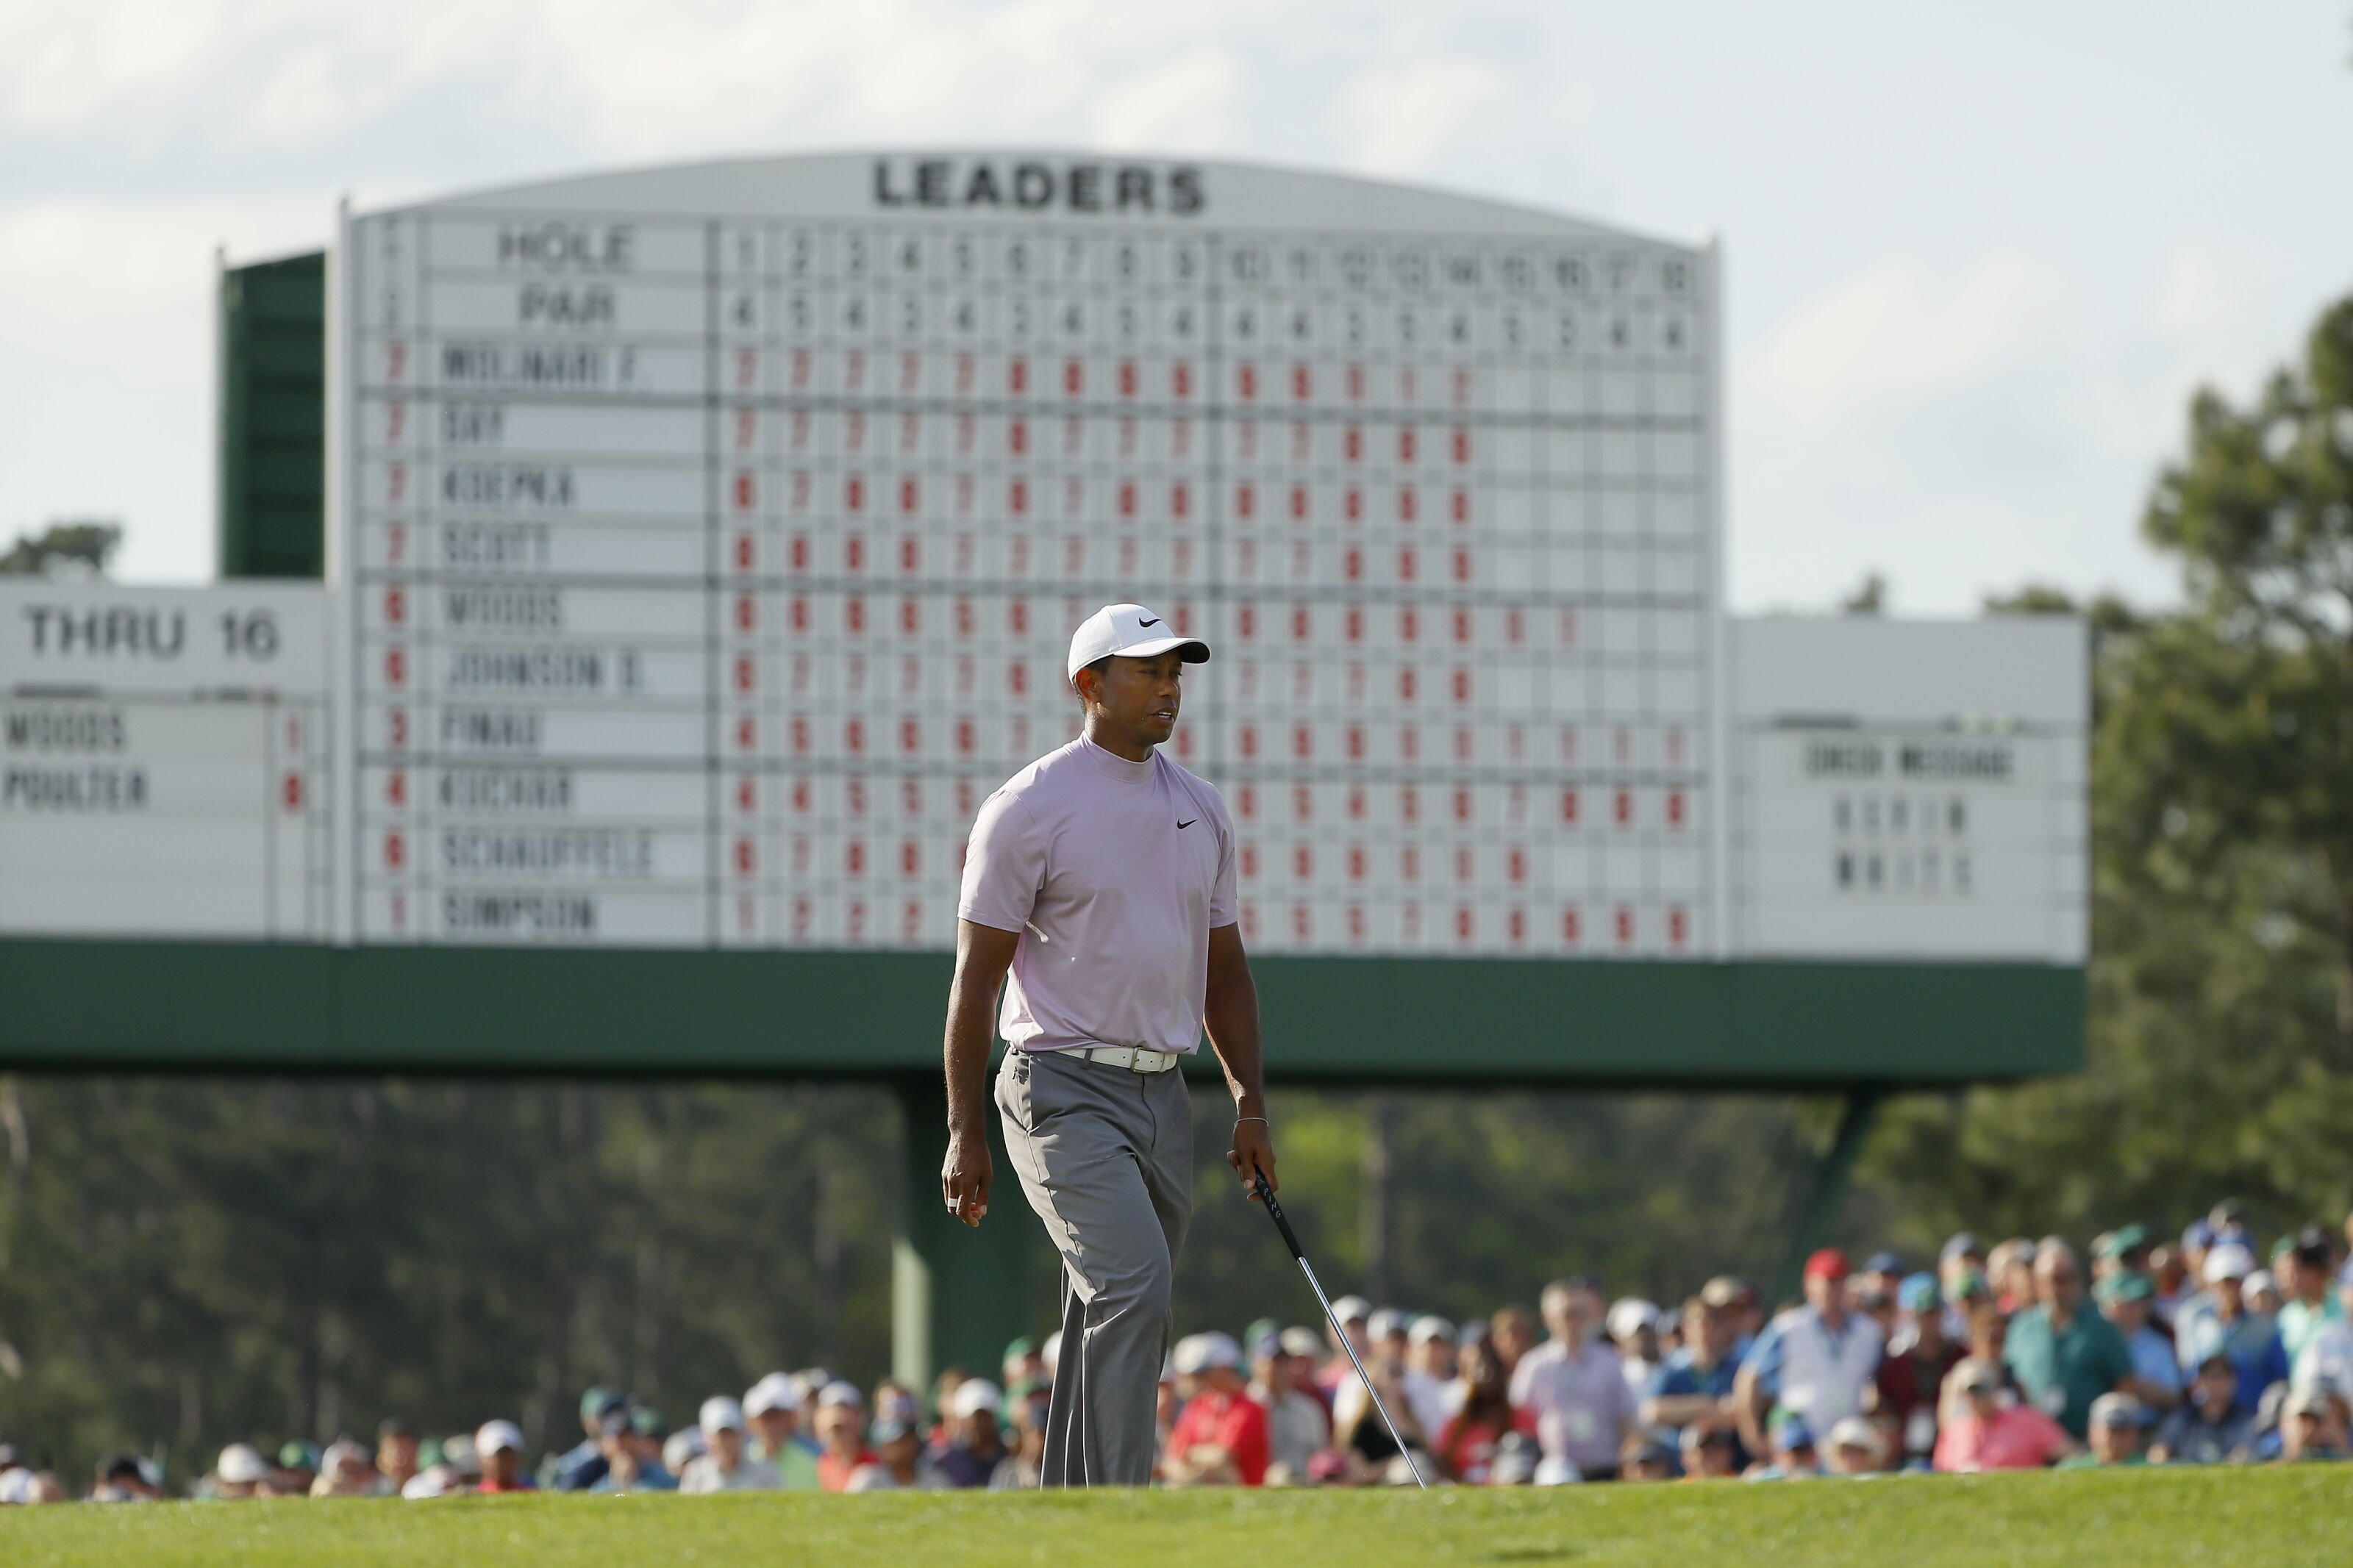 AUGUSTA, GEORGIA - APRIL 13: Tiger Woods of the United States walks on the 17th green during the third round of the Masters at Augusta National Golf Club on April 13, 2019 in Augusta, Georgia. (Photo by Kevin C. Cox/Getty Images)